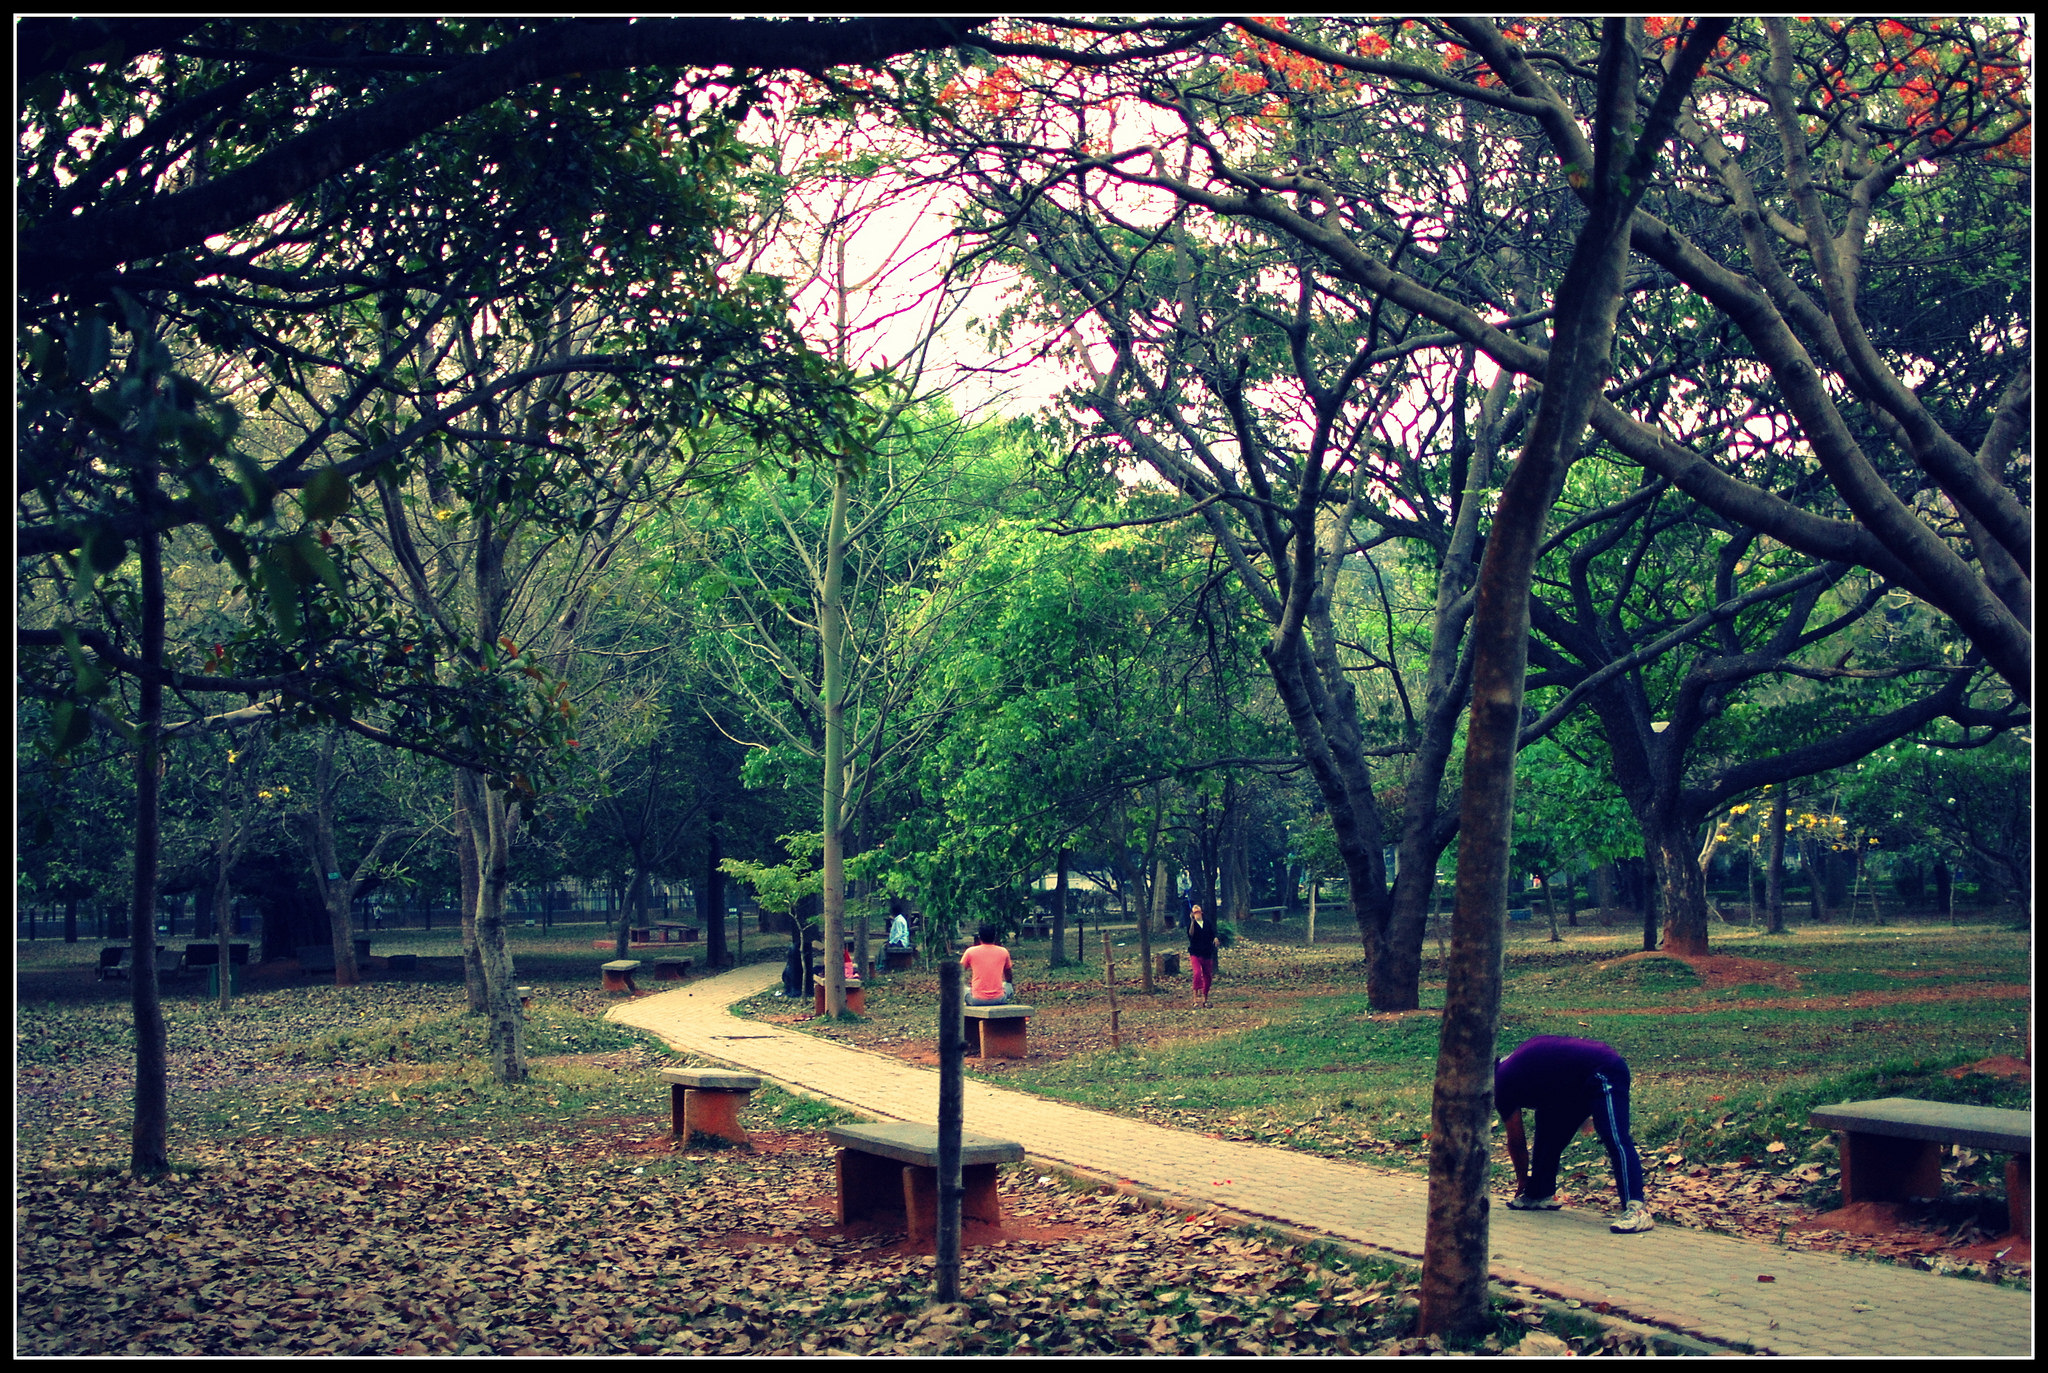 Cubbon Park is a rare green space in the heart of the city. (Photo credit: Chirag Rathod/Flickr [Licensed under CC-BY 2.0])